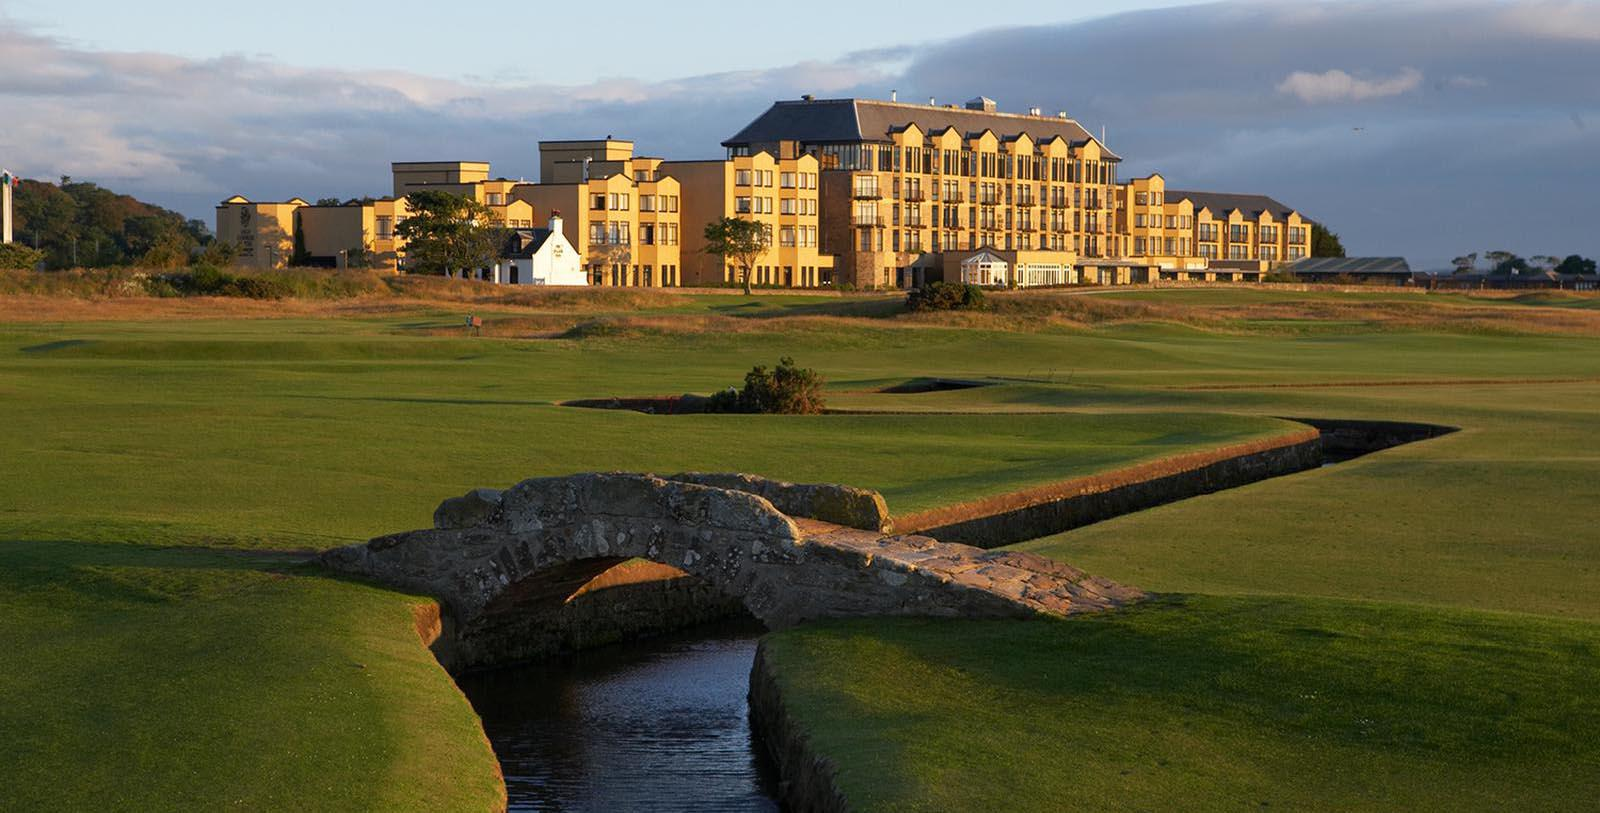 Image of Golf Course Old Course Hotel, Golf Resort & Spa, 15th Century, Member of Historic Hotels Worldwide, in St. Andrews, Scotland, Overview